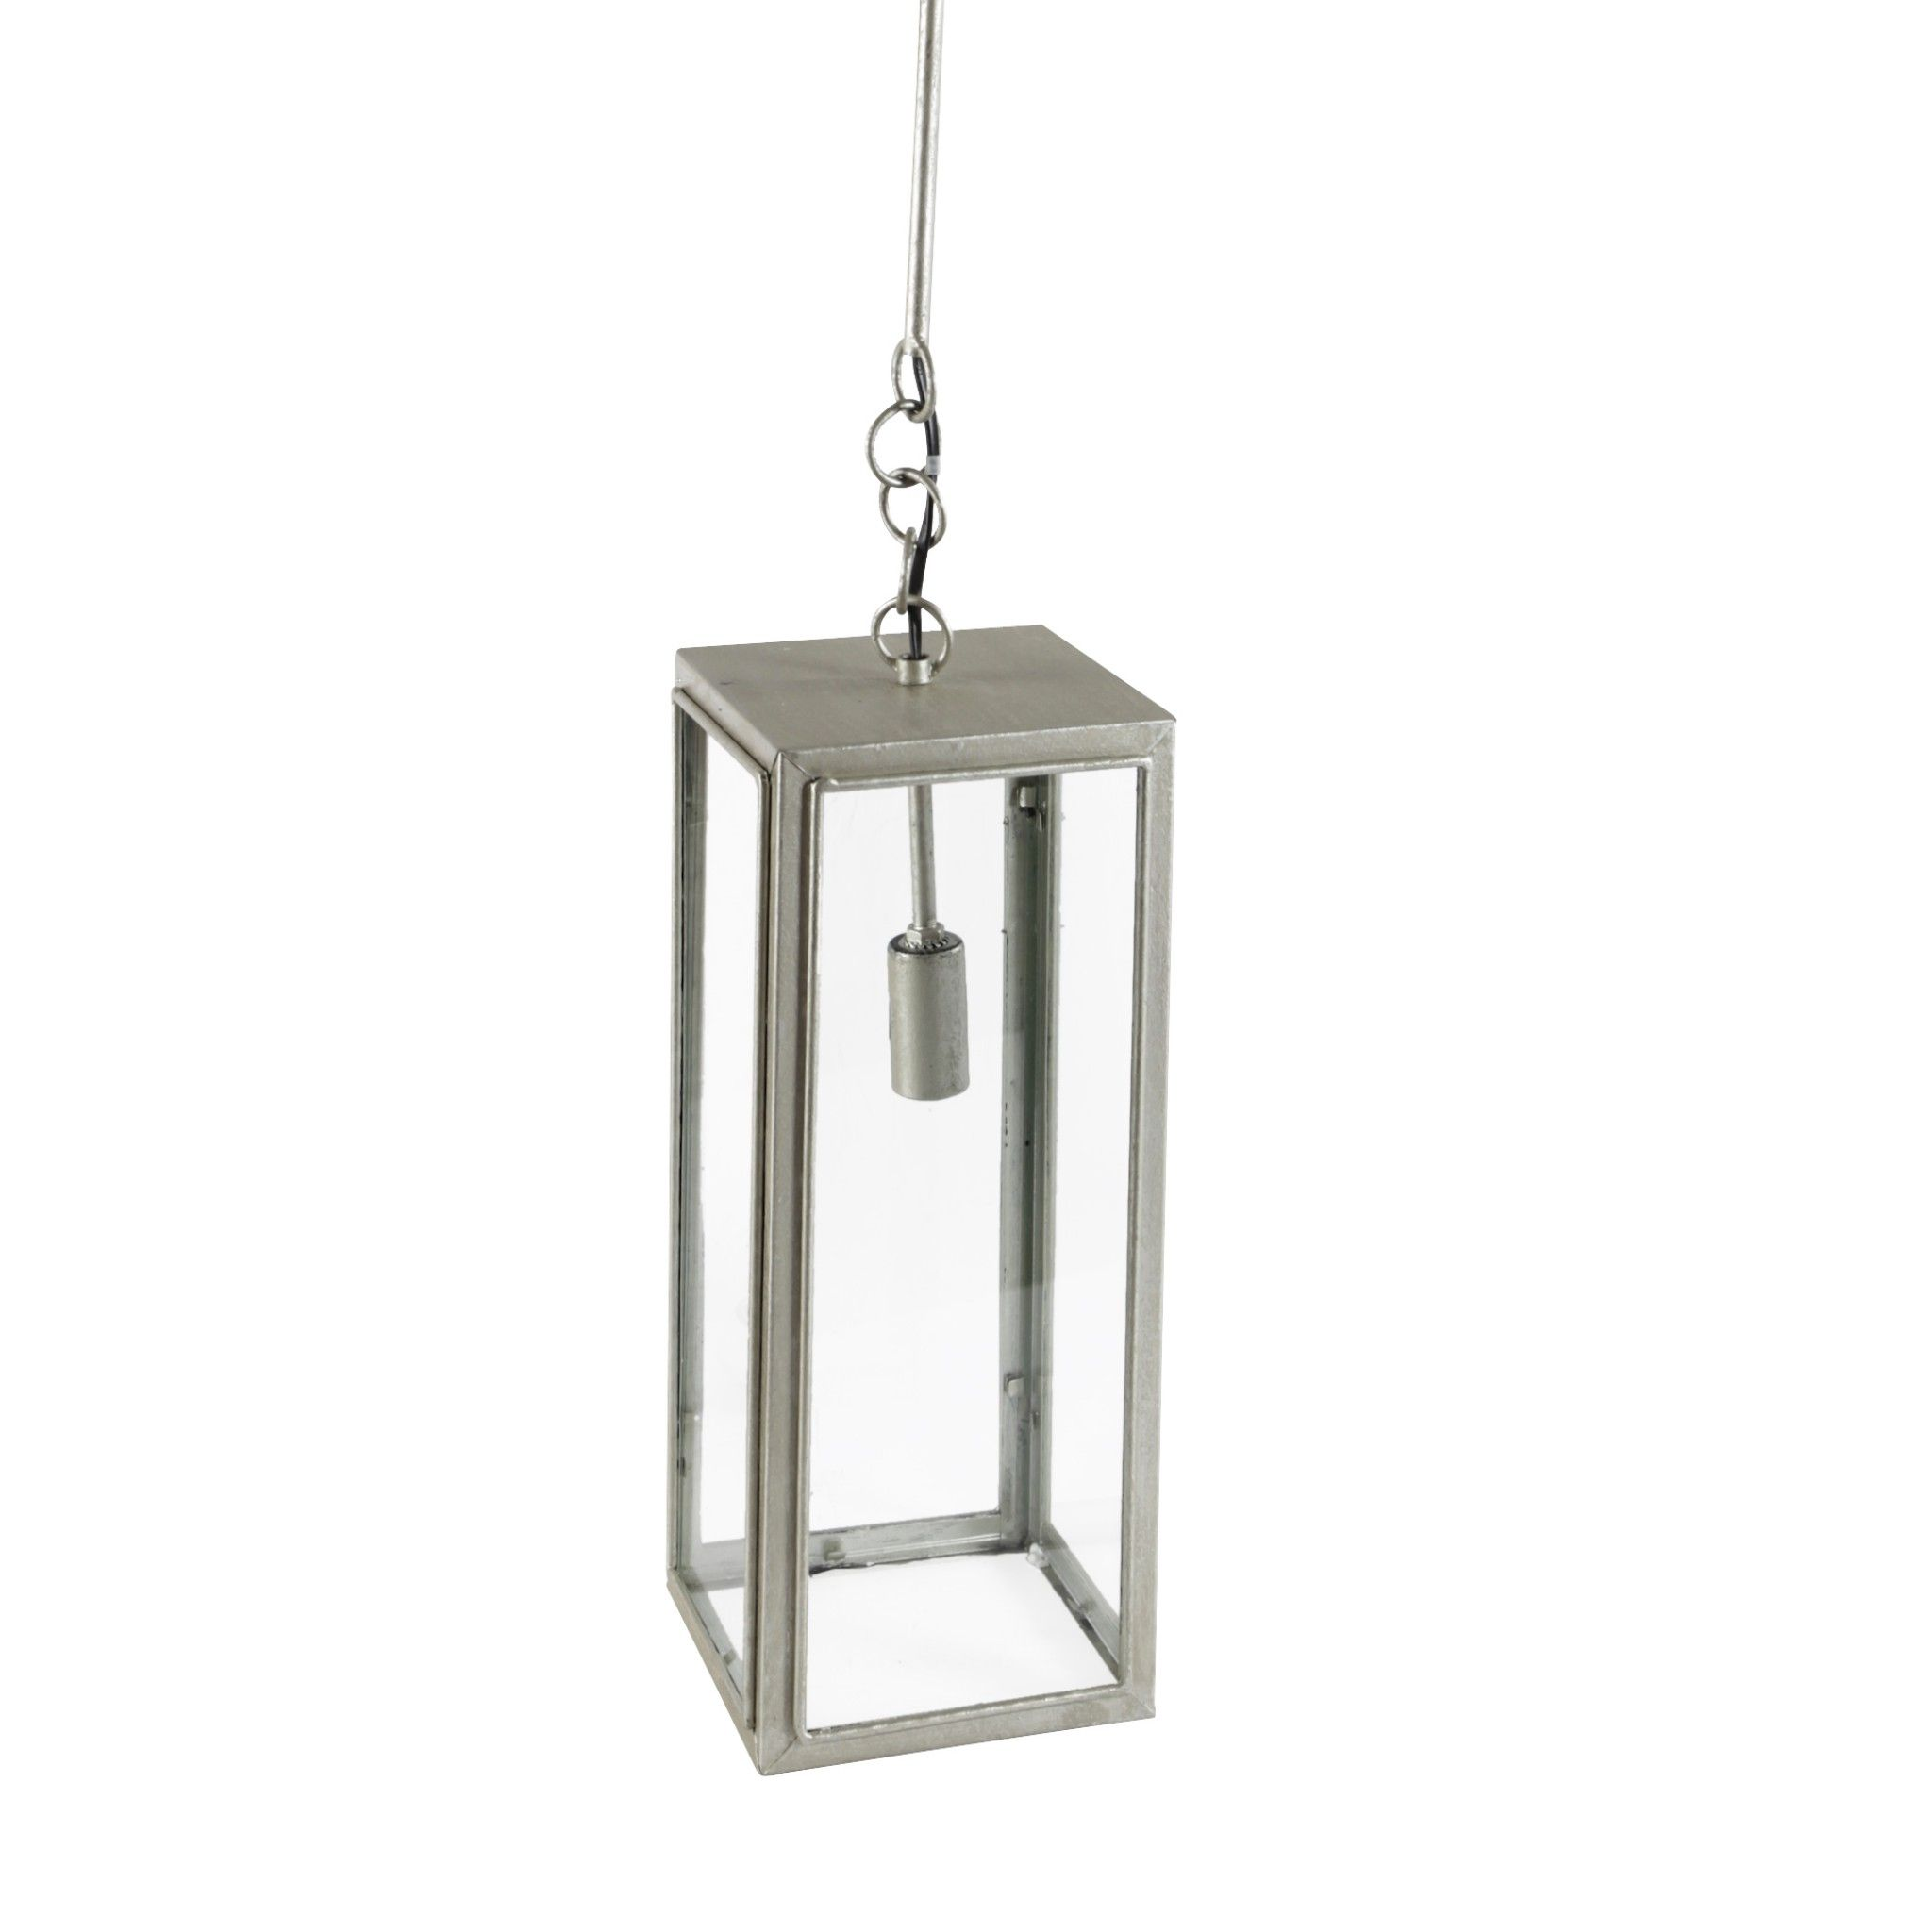 Elation lamp square white - Deckenlampe - Beleuchtung - PTMD 170 eur